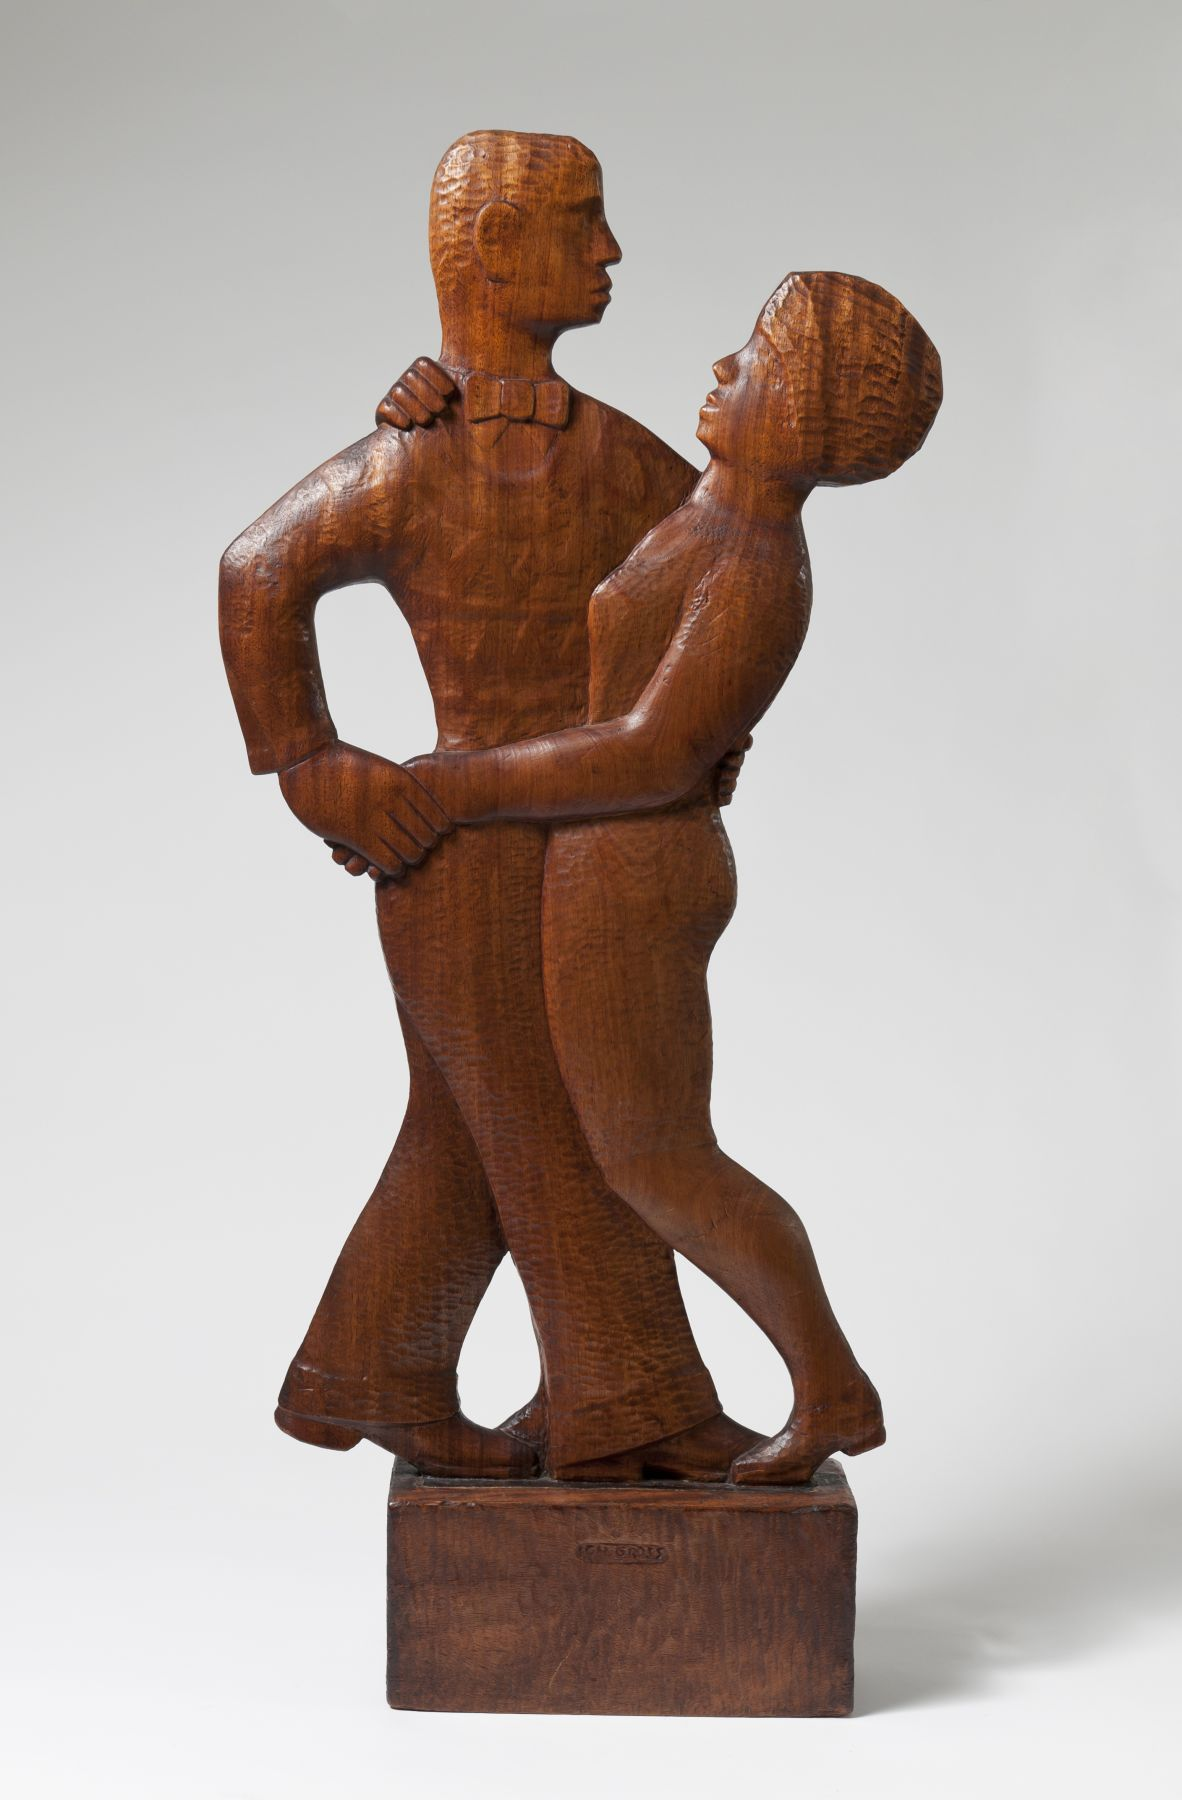 Chaim Gross, Jazz, 1929, mahogany, 41 5/8 h x 19 w x 5 d (at base) inches